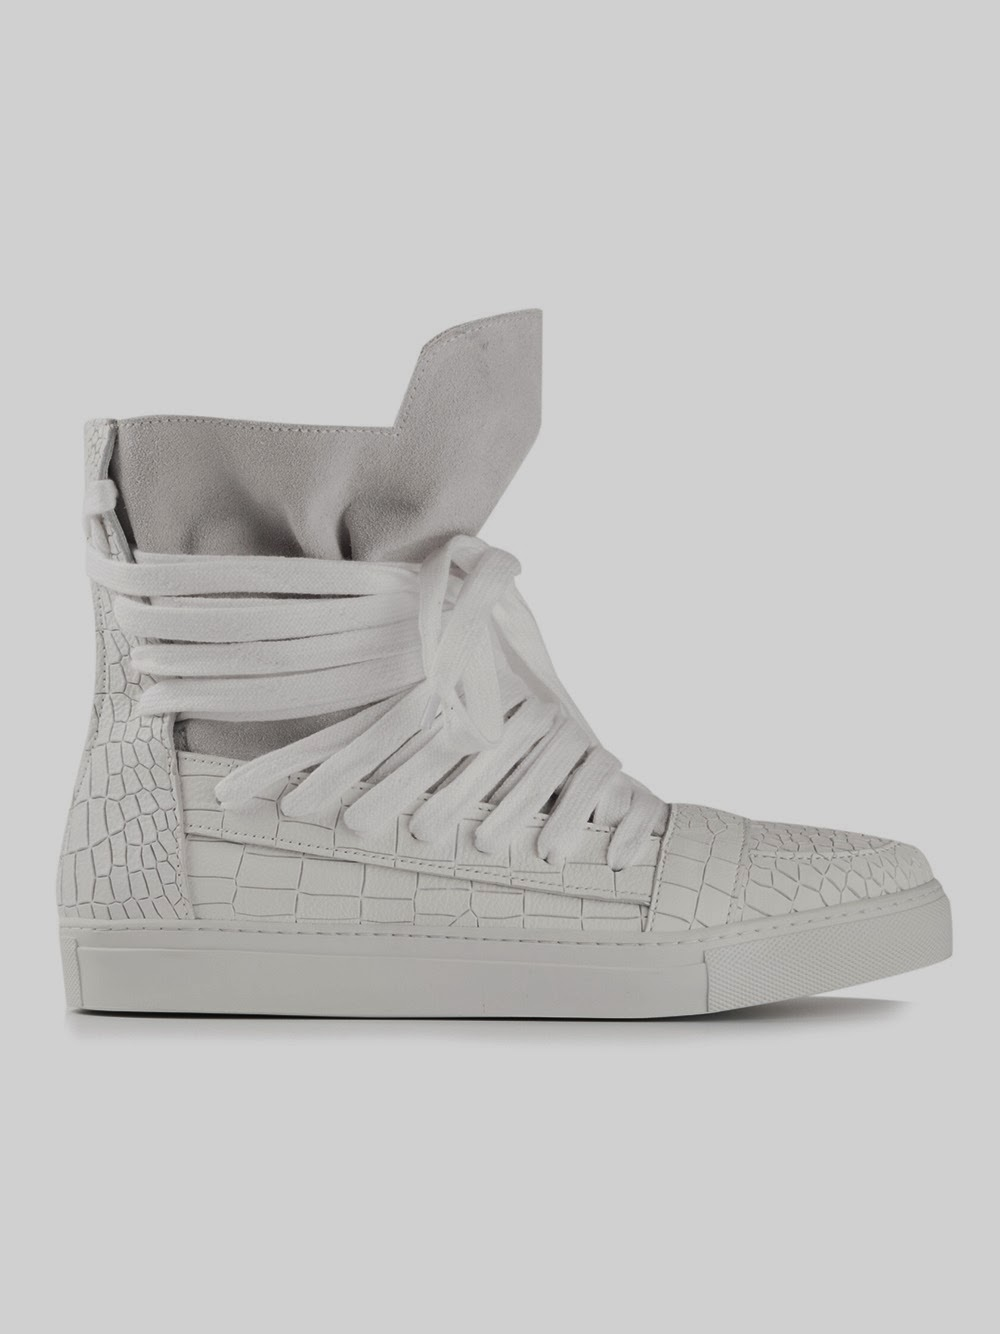 http://www.henrikvibskovboutique.com/shopping/men/kris-van-assche/shoes-2/items.aspx?userd=1